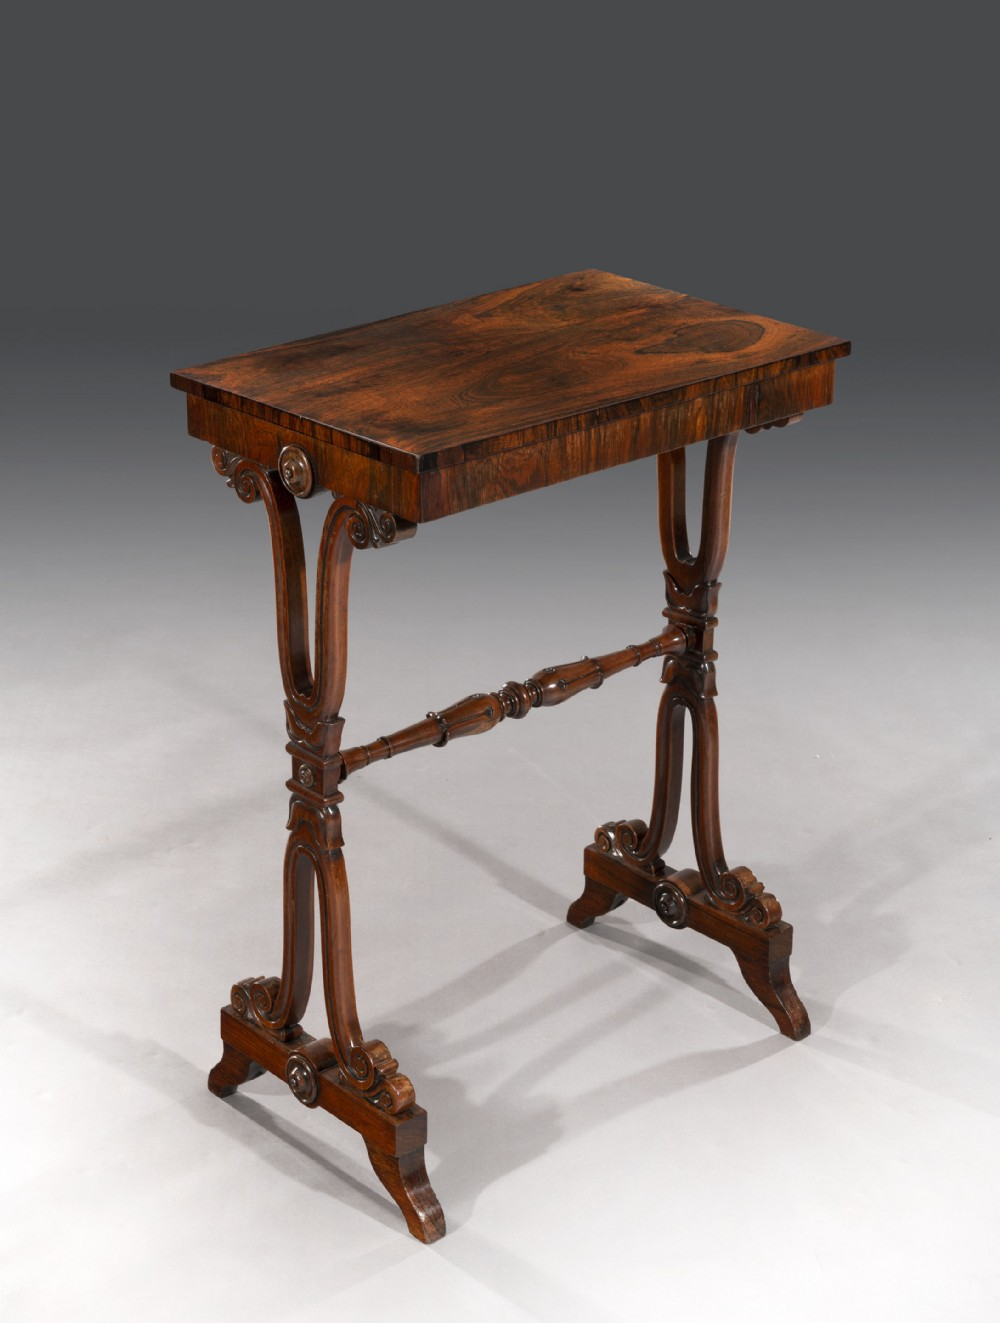 regency rosewood occasional table end table in the manner of george smith